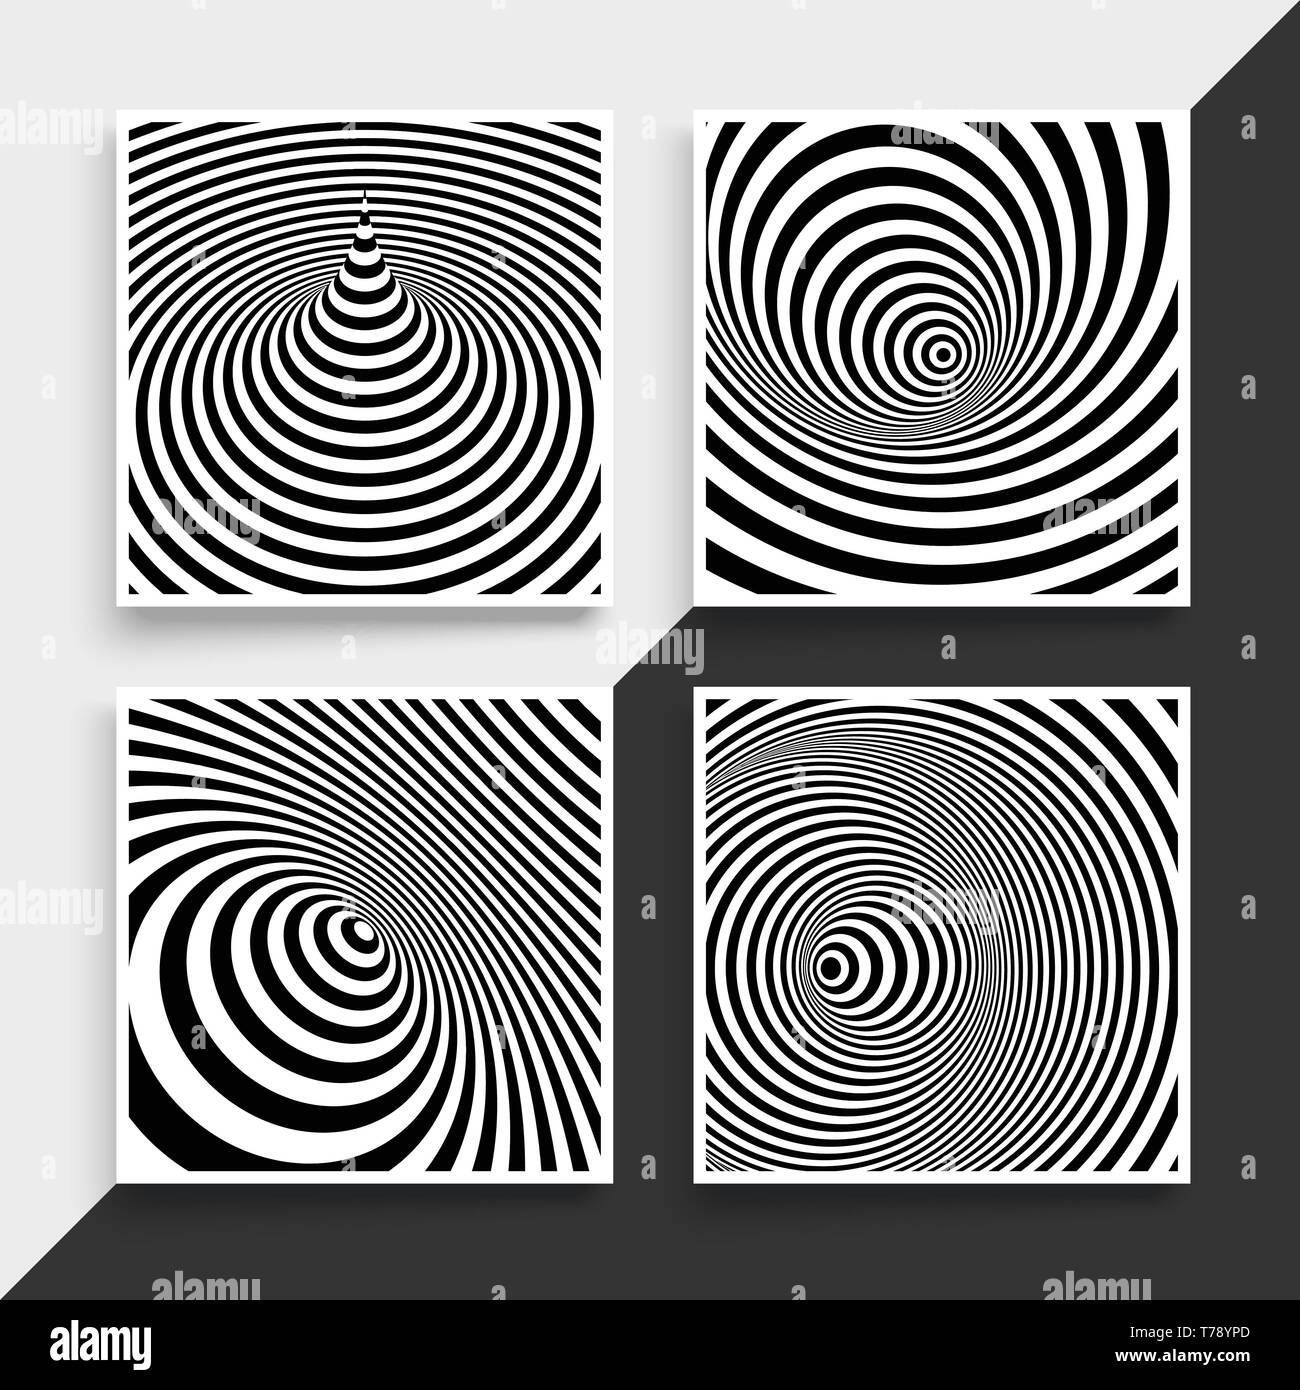 Black and white abstract striped background. Optical Art. Textbook, booklet or notebook mockup. Business brochure. Cover design template. Vector Illus - Stock Vector